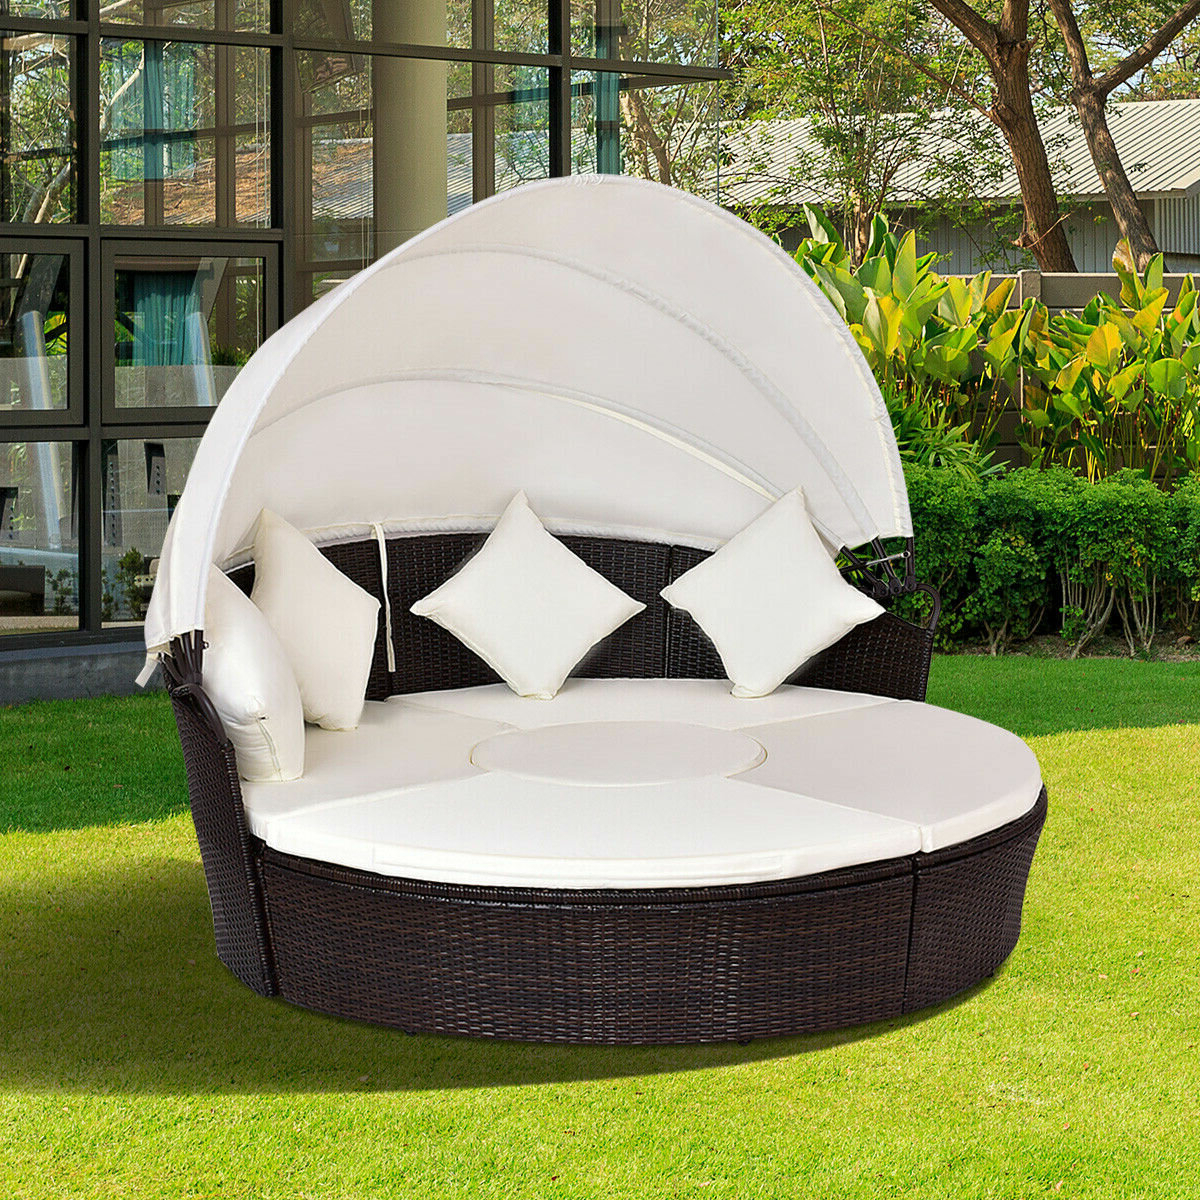 Fashionable Leiston Round Patio Daybeds With Cushions In Sharleen Patio Daybed With Cushions (View 5 of 20)